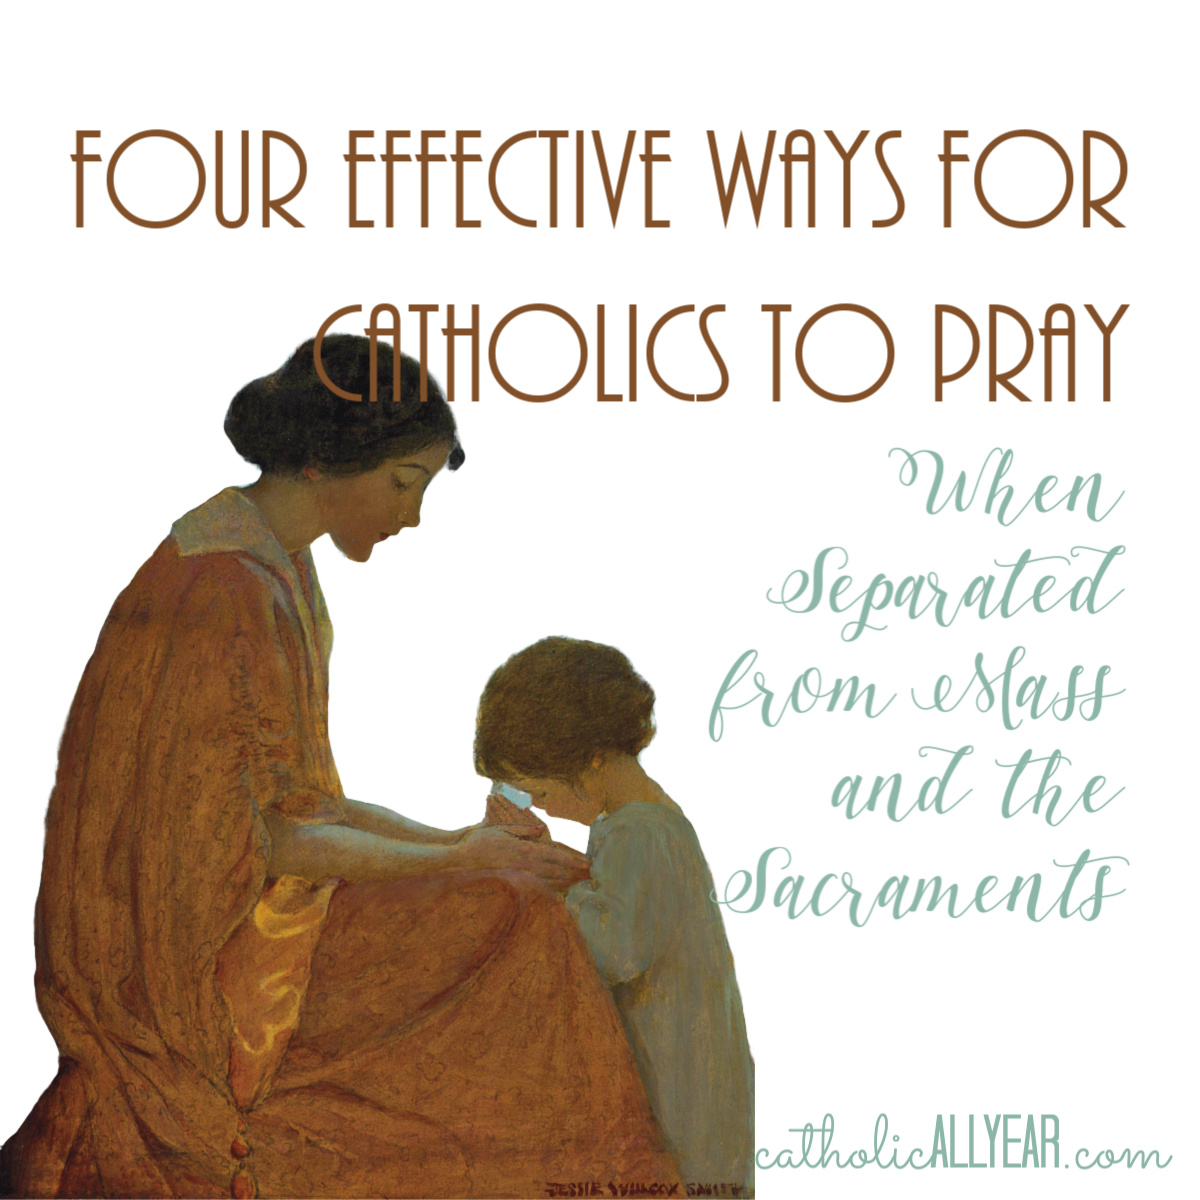 Four Effective Ways for Catholics to Pray When Separated from Mass and the Sacraments